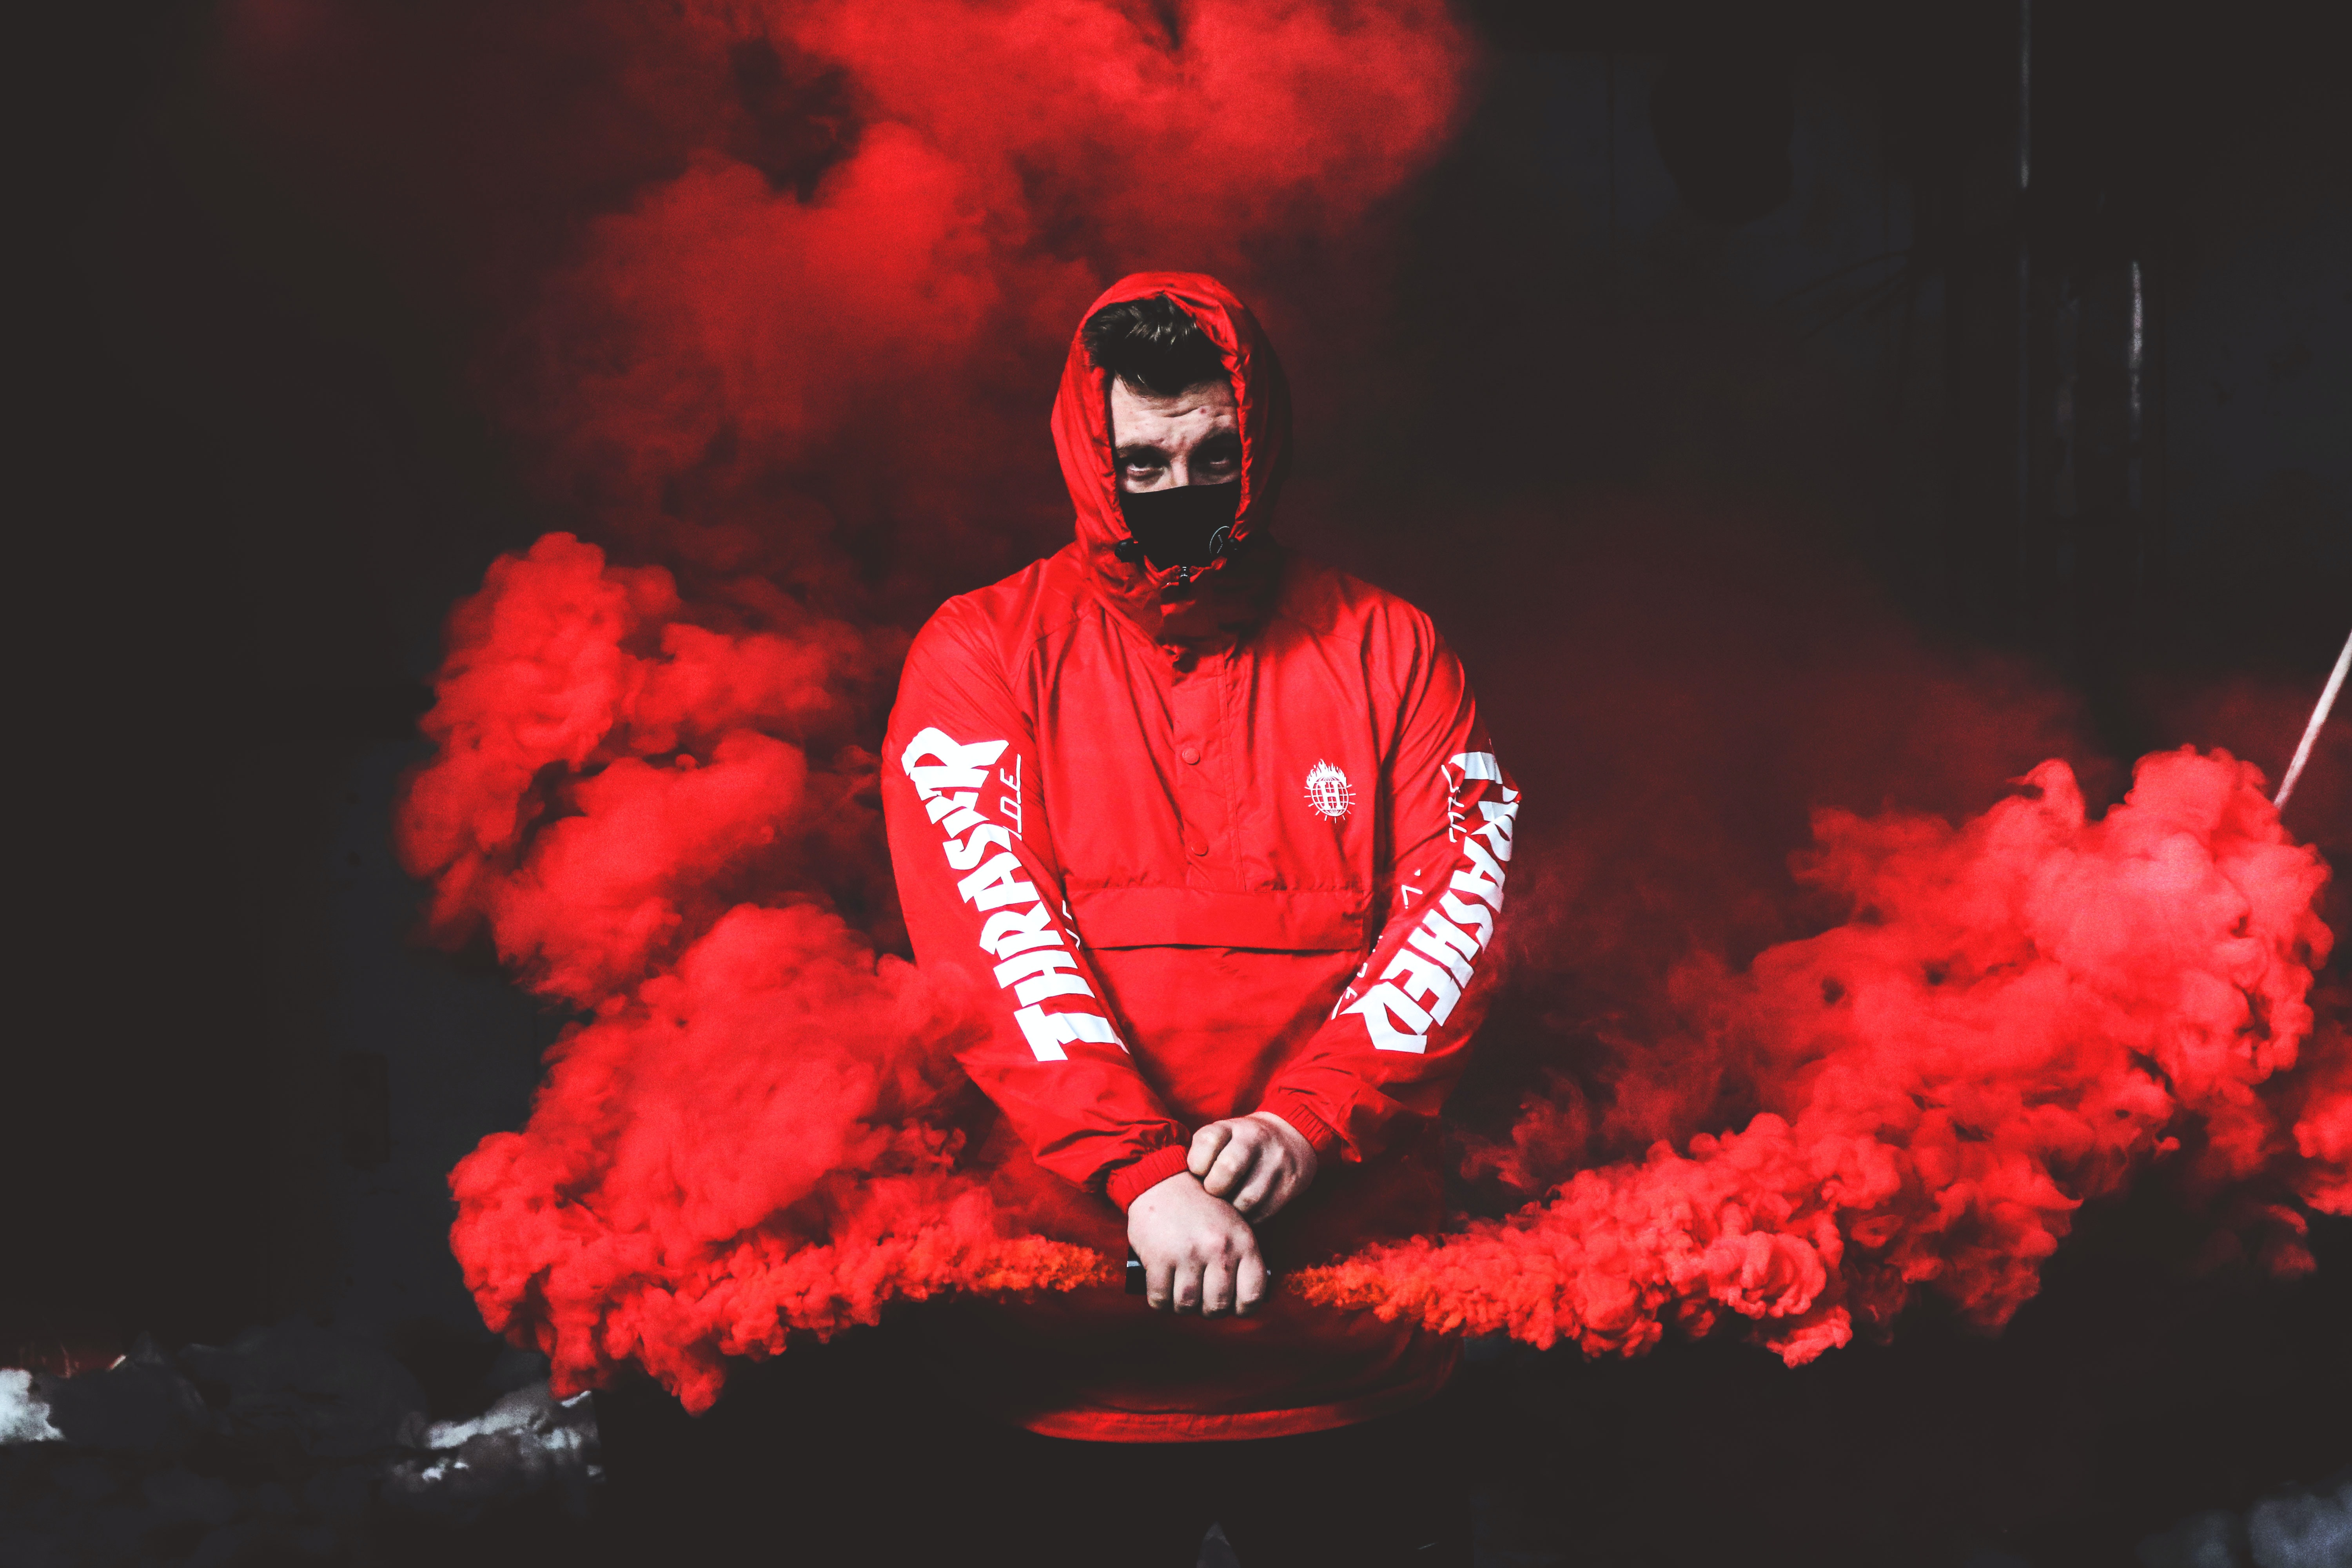 man wearing red and white hoodie and black mask surrounded by red smoke